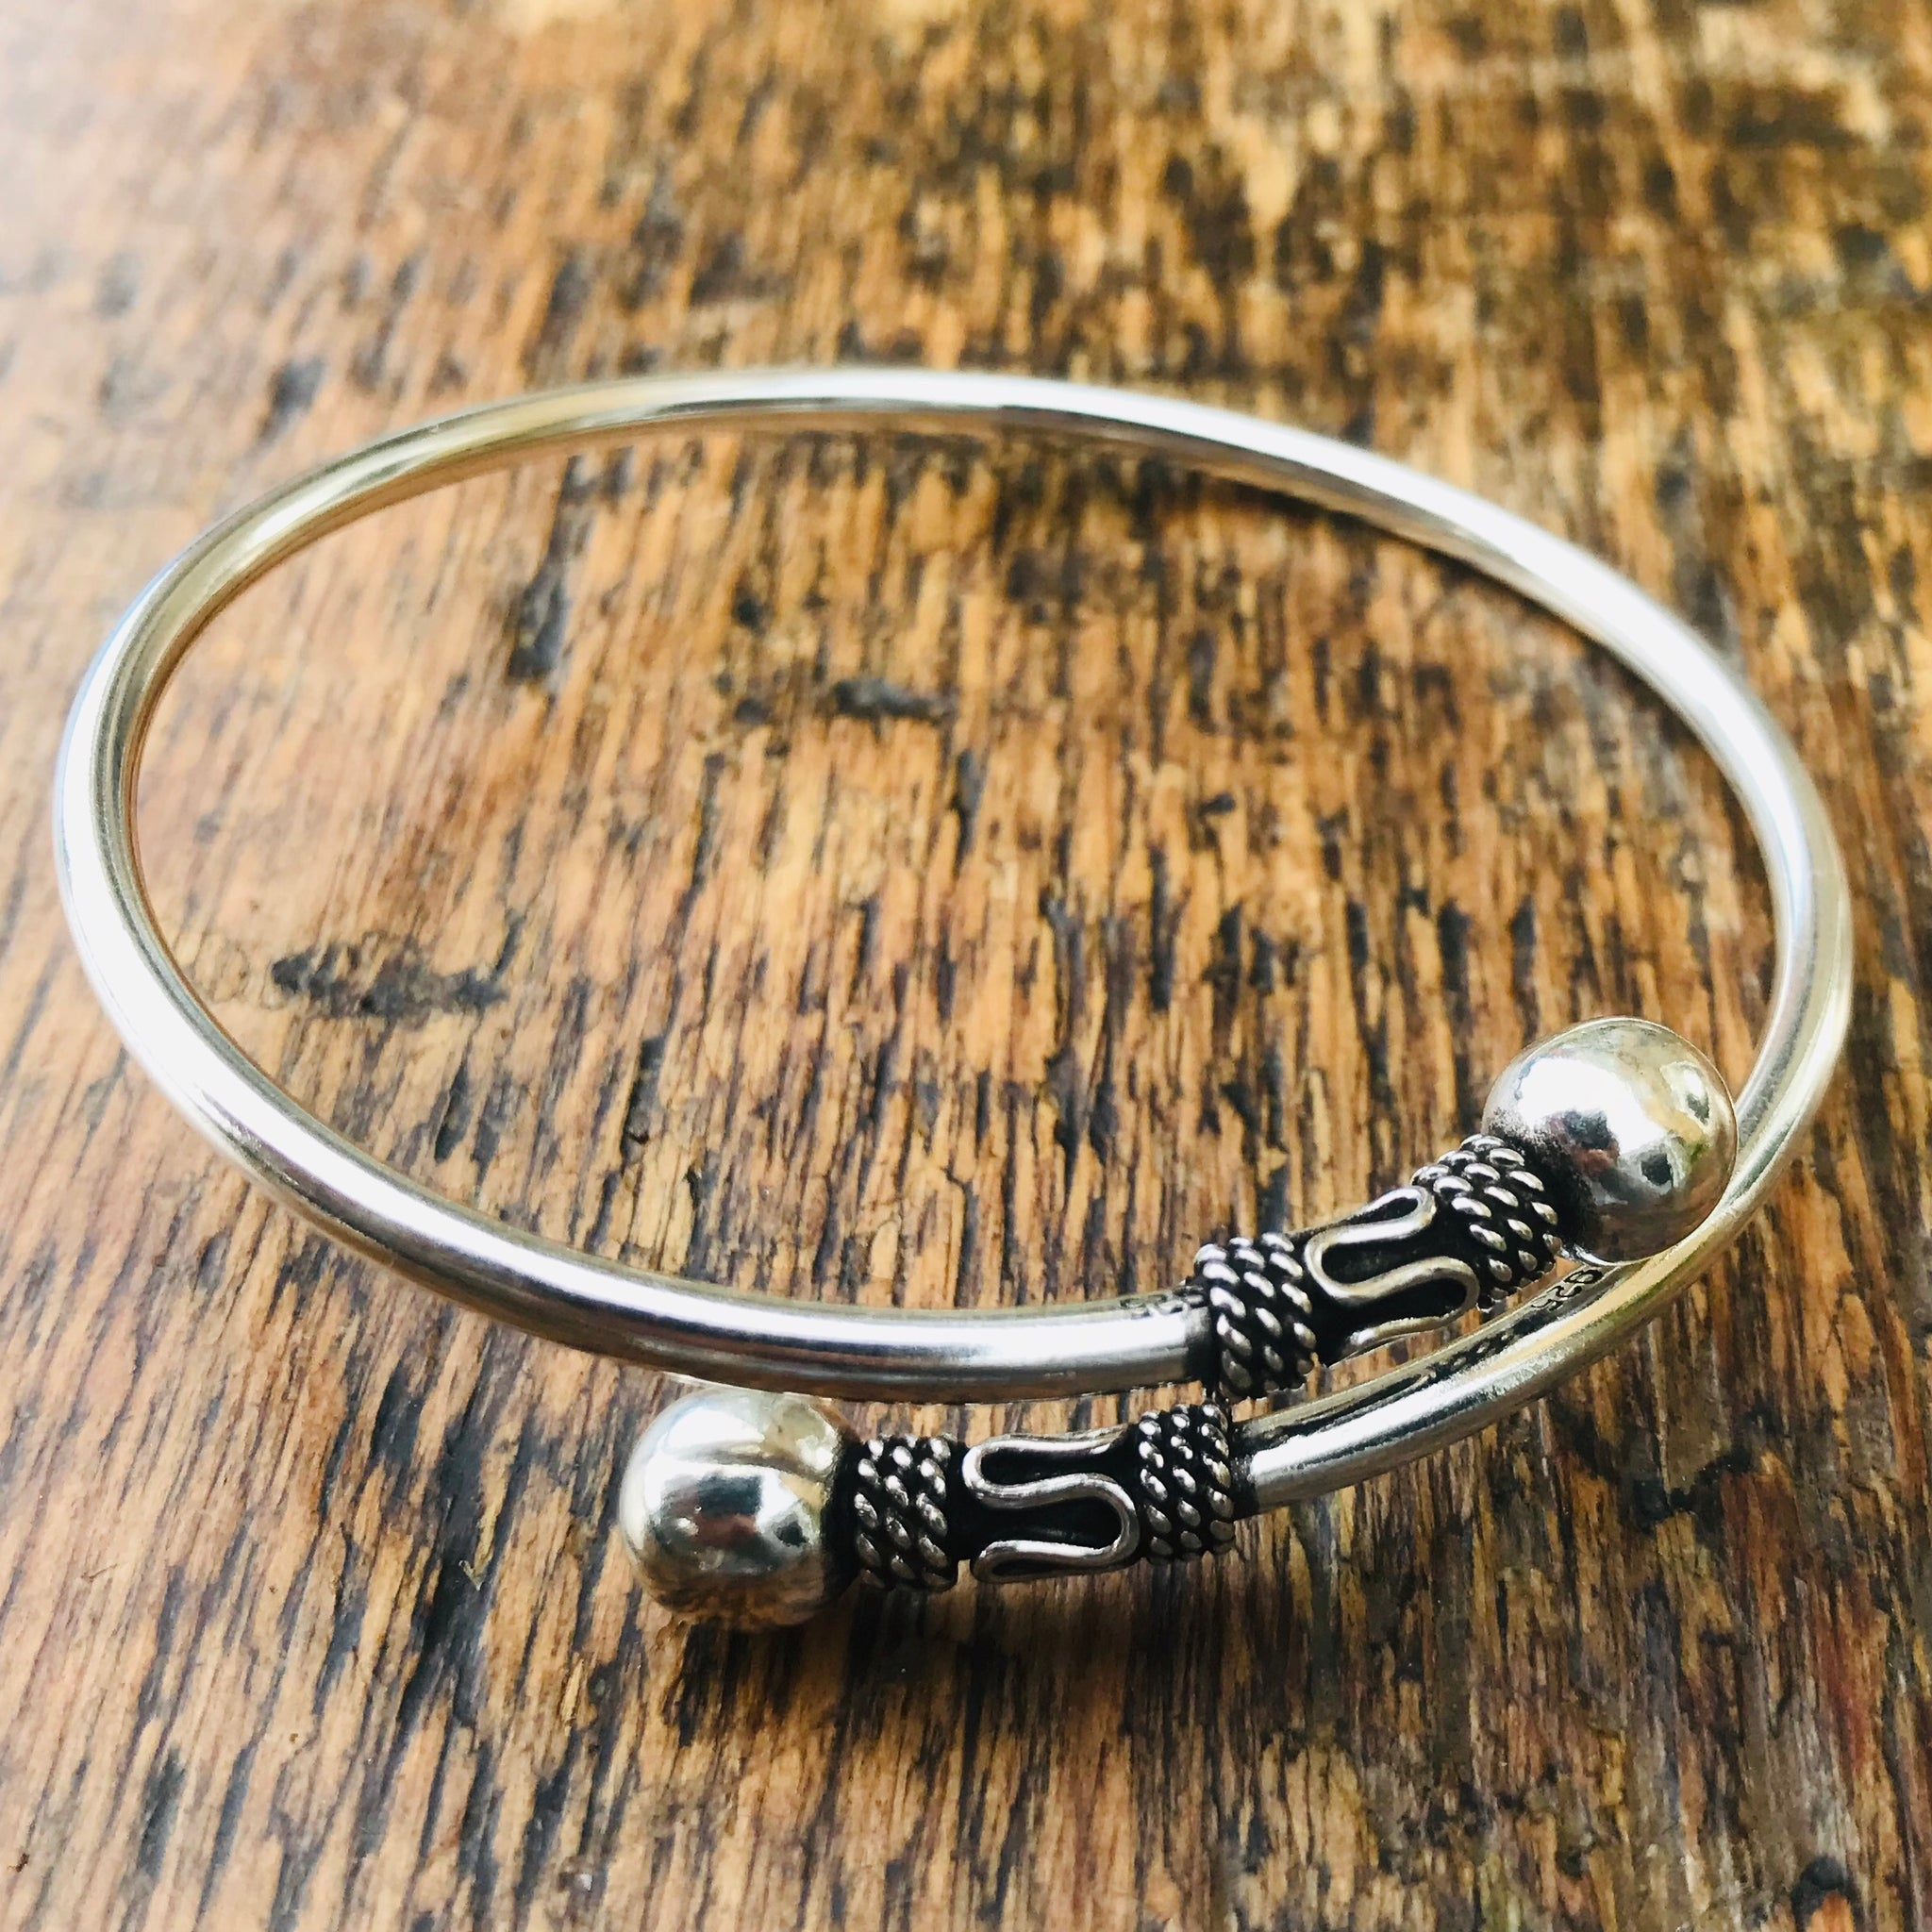 'Borobudur' Ubud Sterling Silver Cuff Bangle